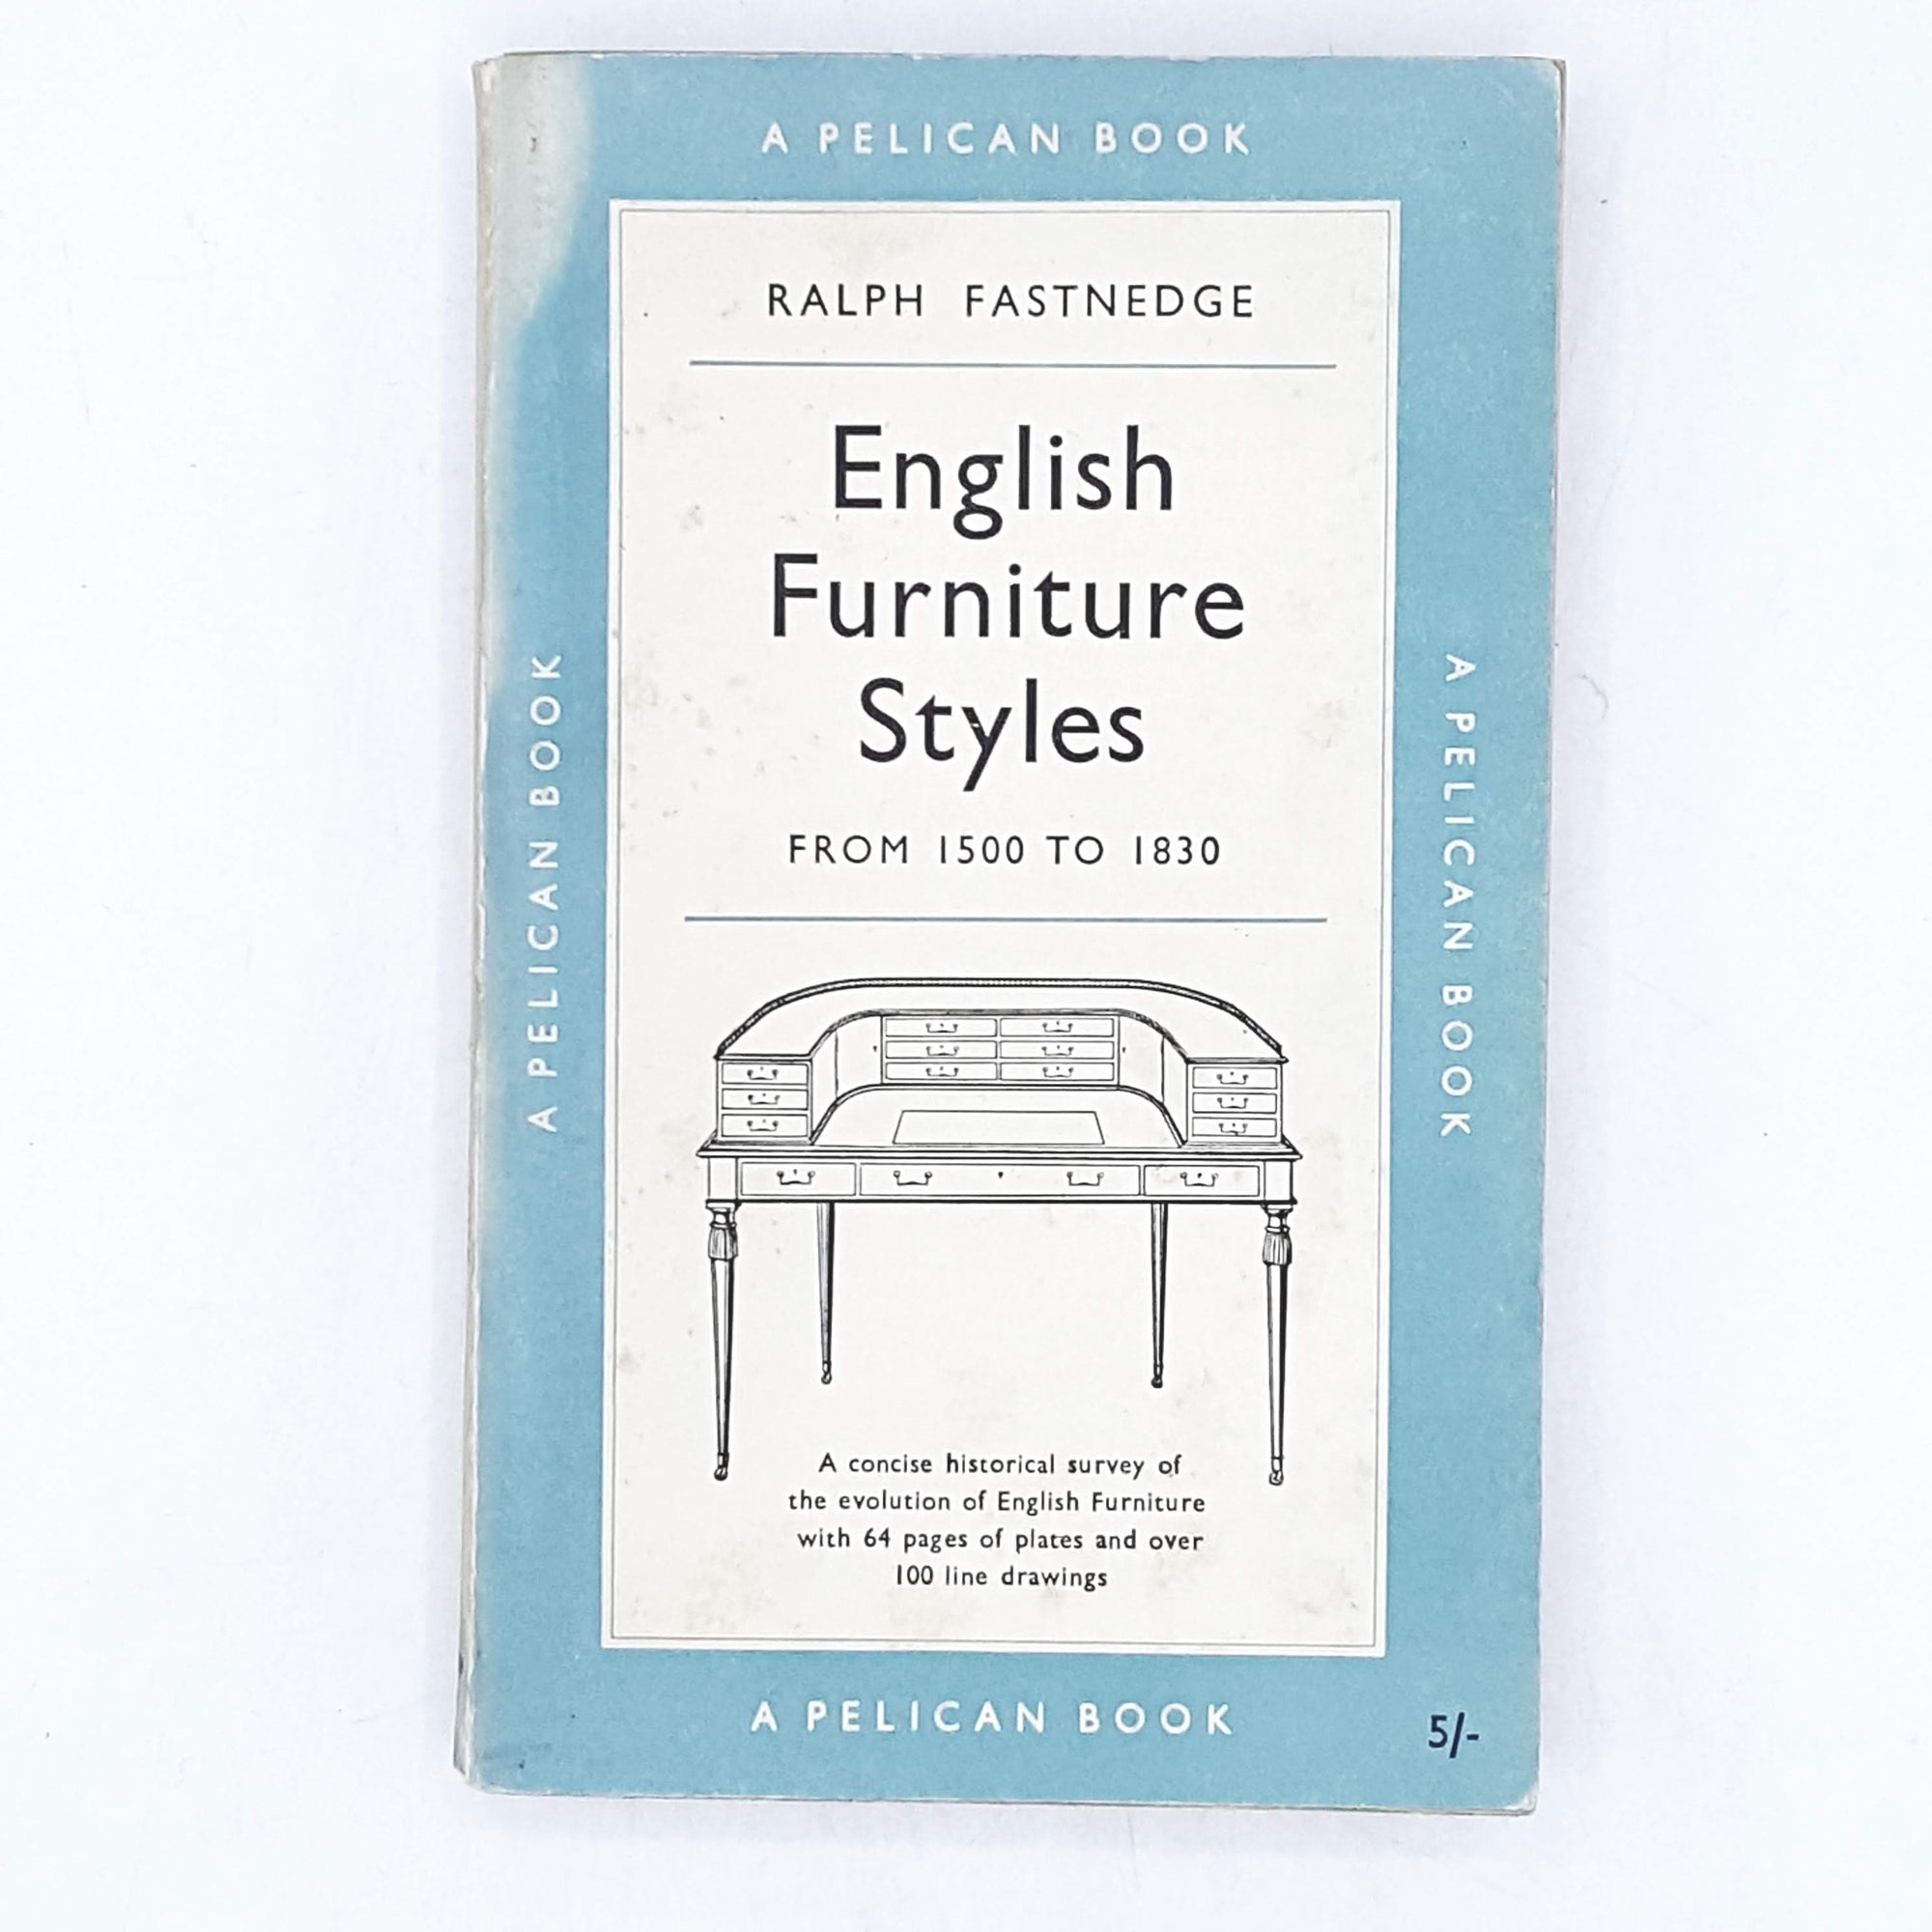 English Furniture Styles by Ralph Fastnedge 1955